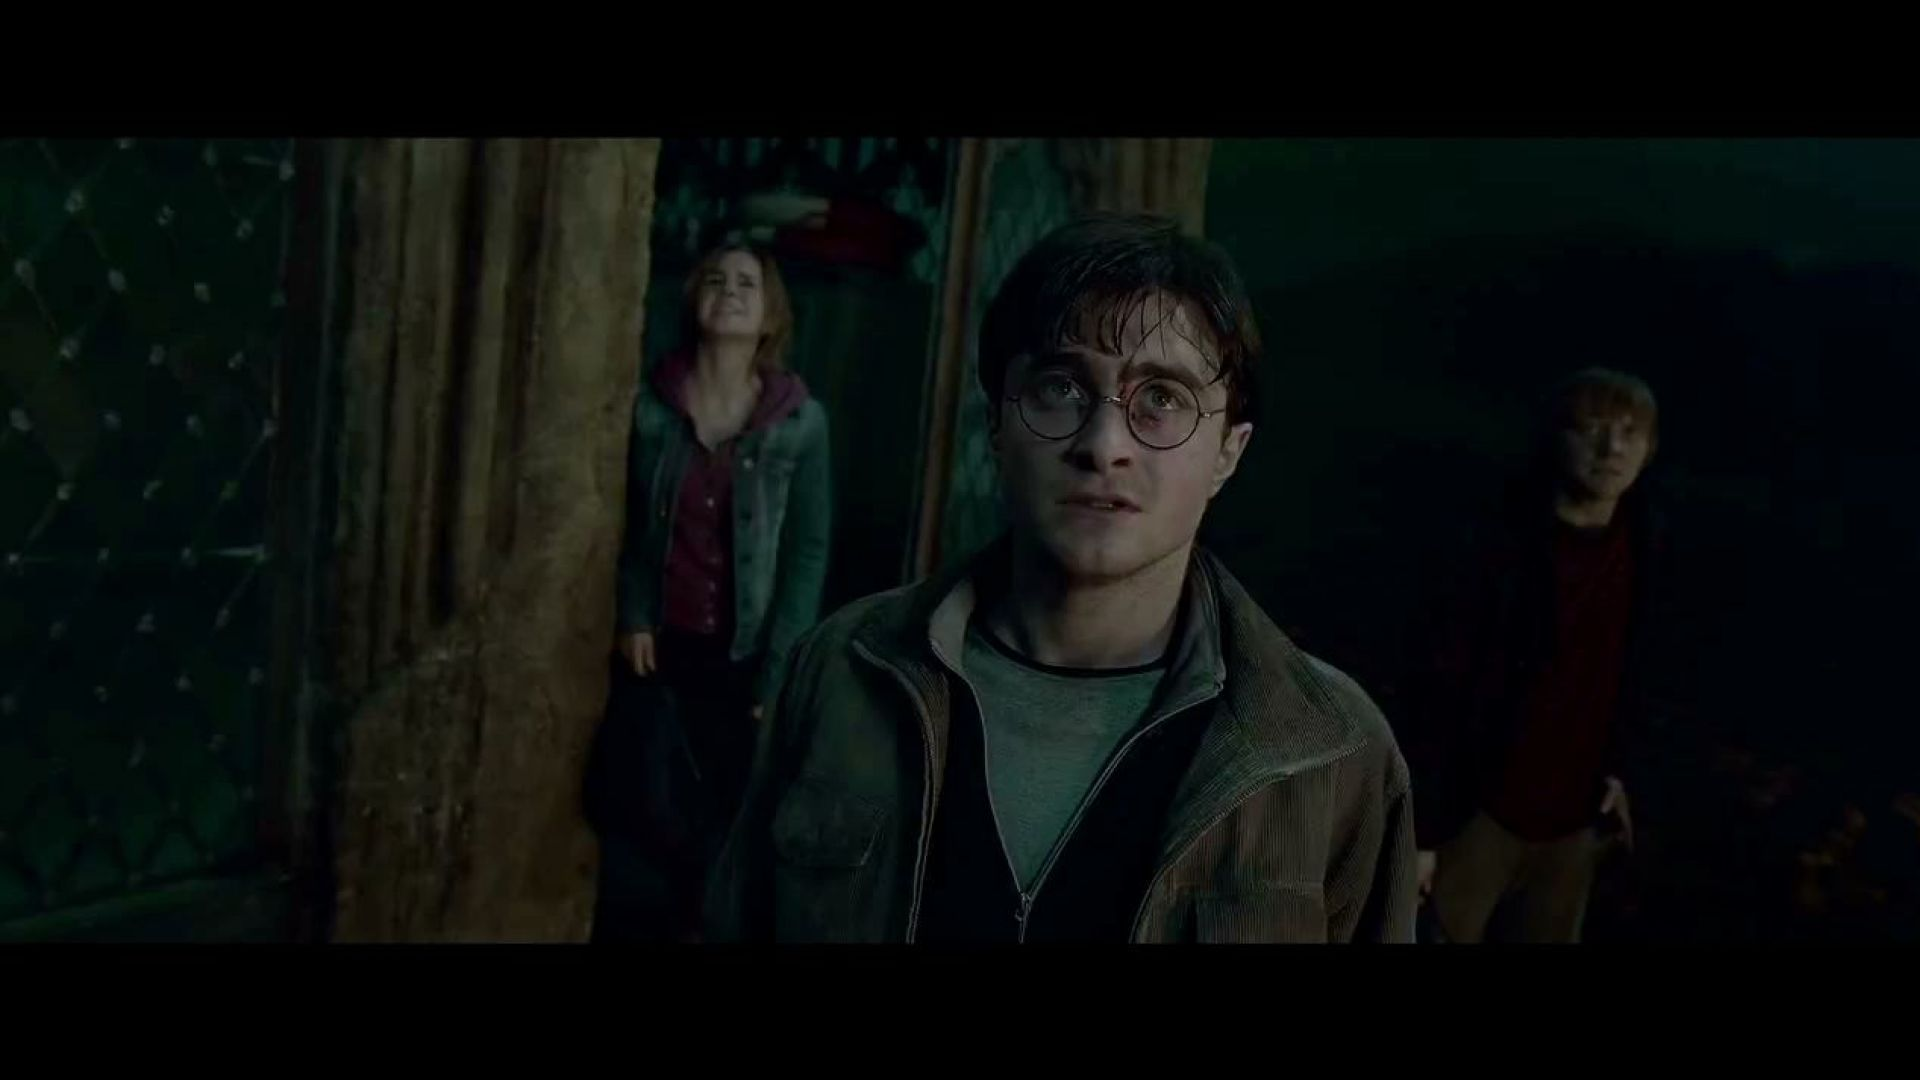 Harry Potter, confront your fate